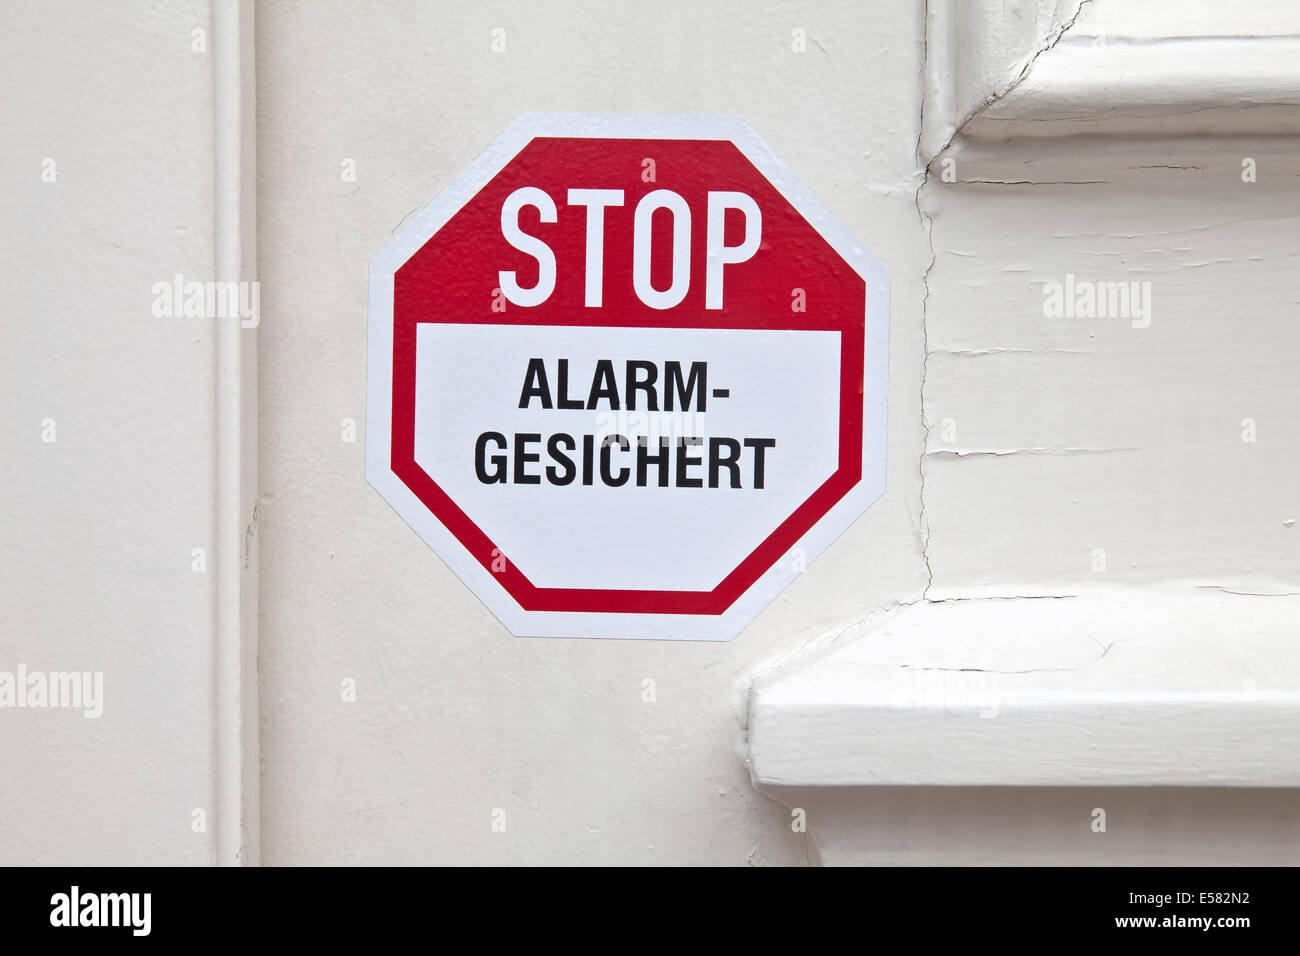 Stop, alarm system, sticker on the door, Germany - Stock Image